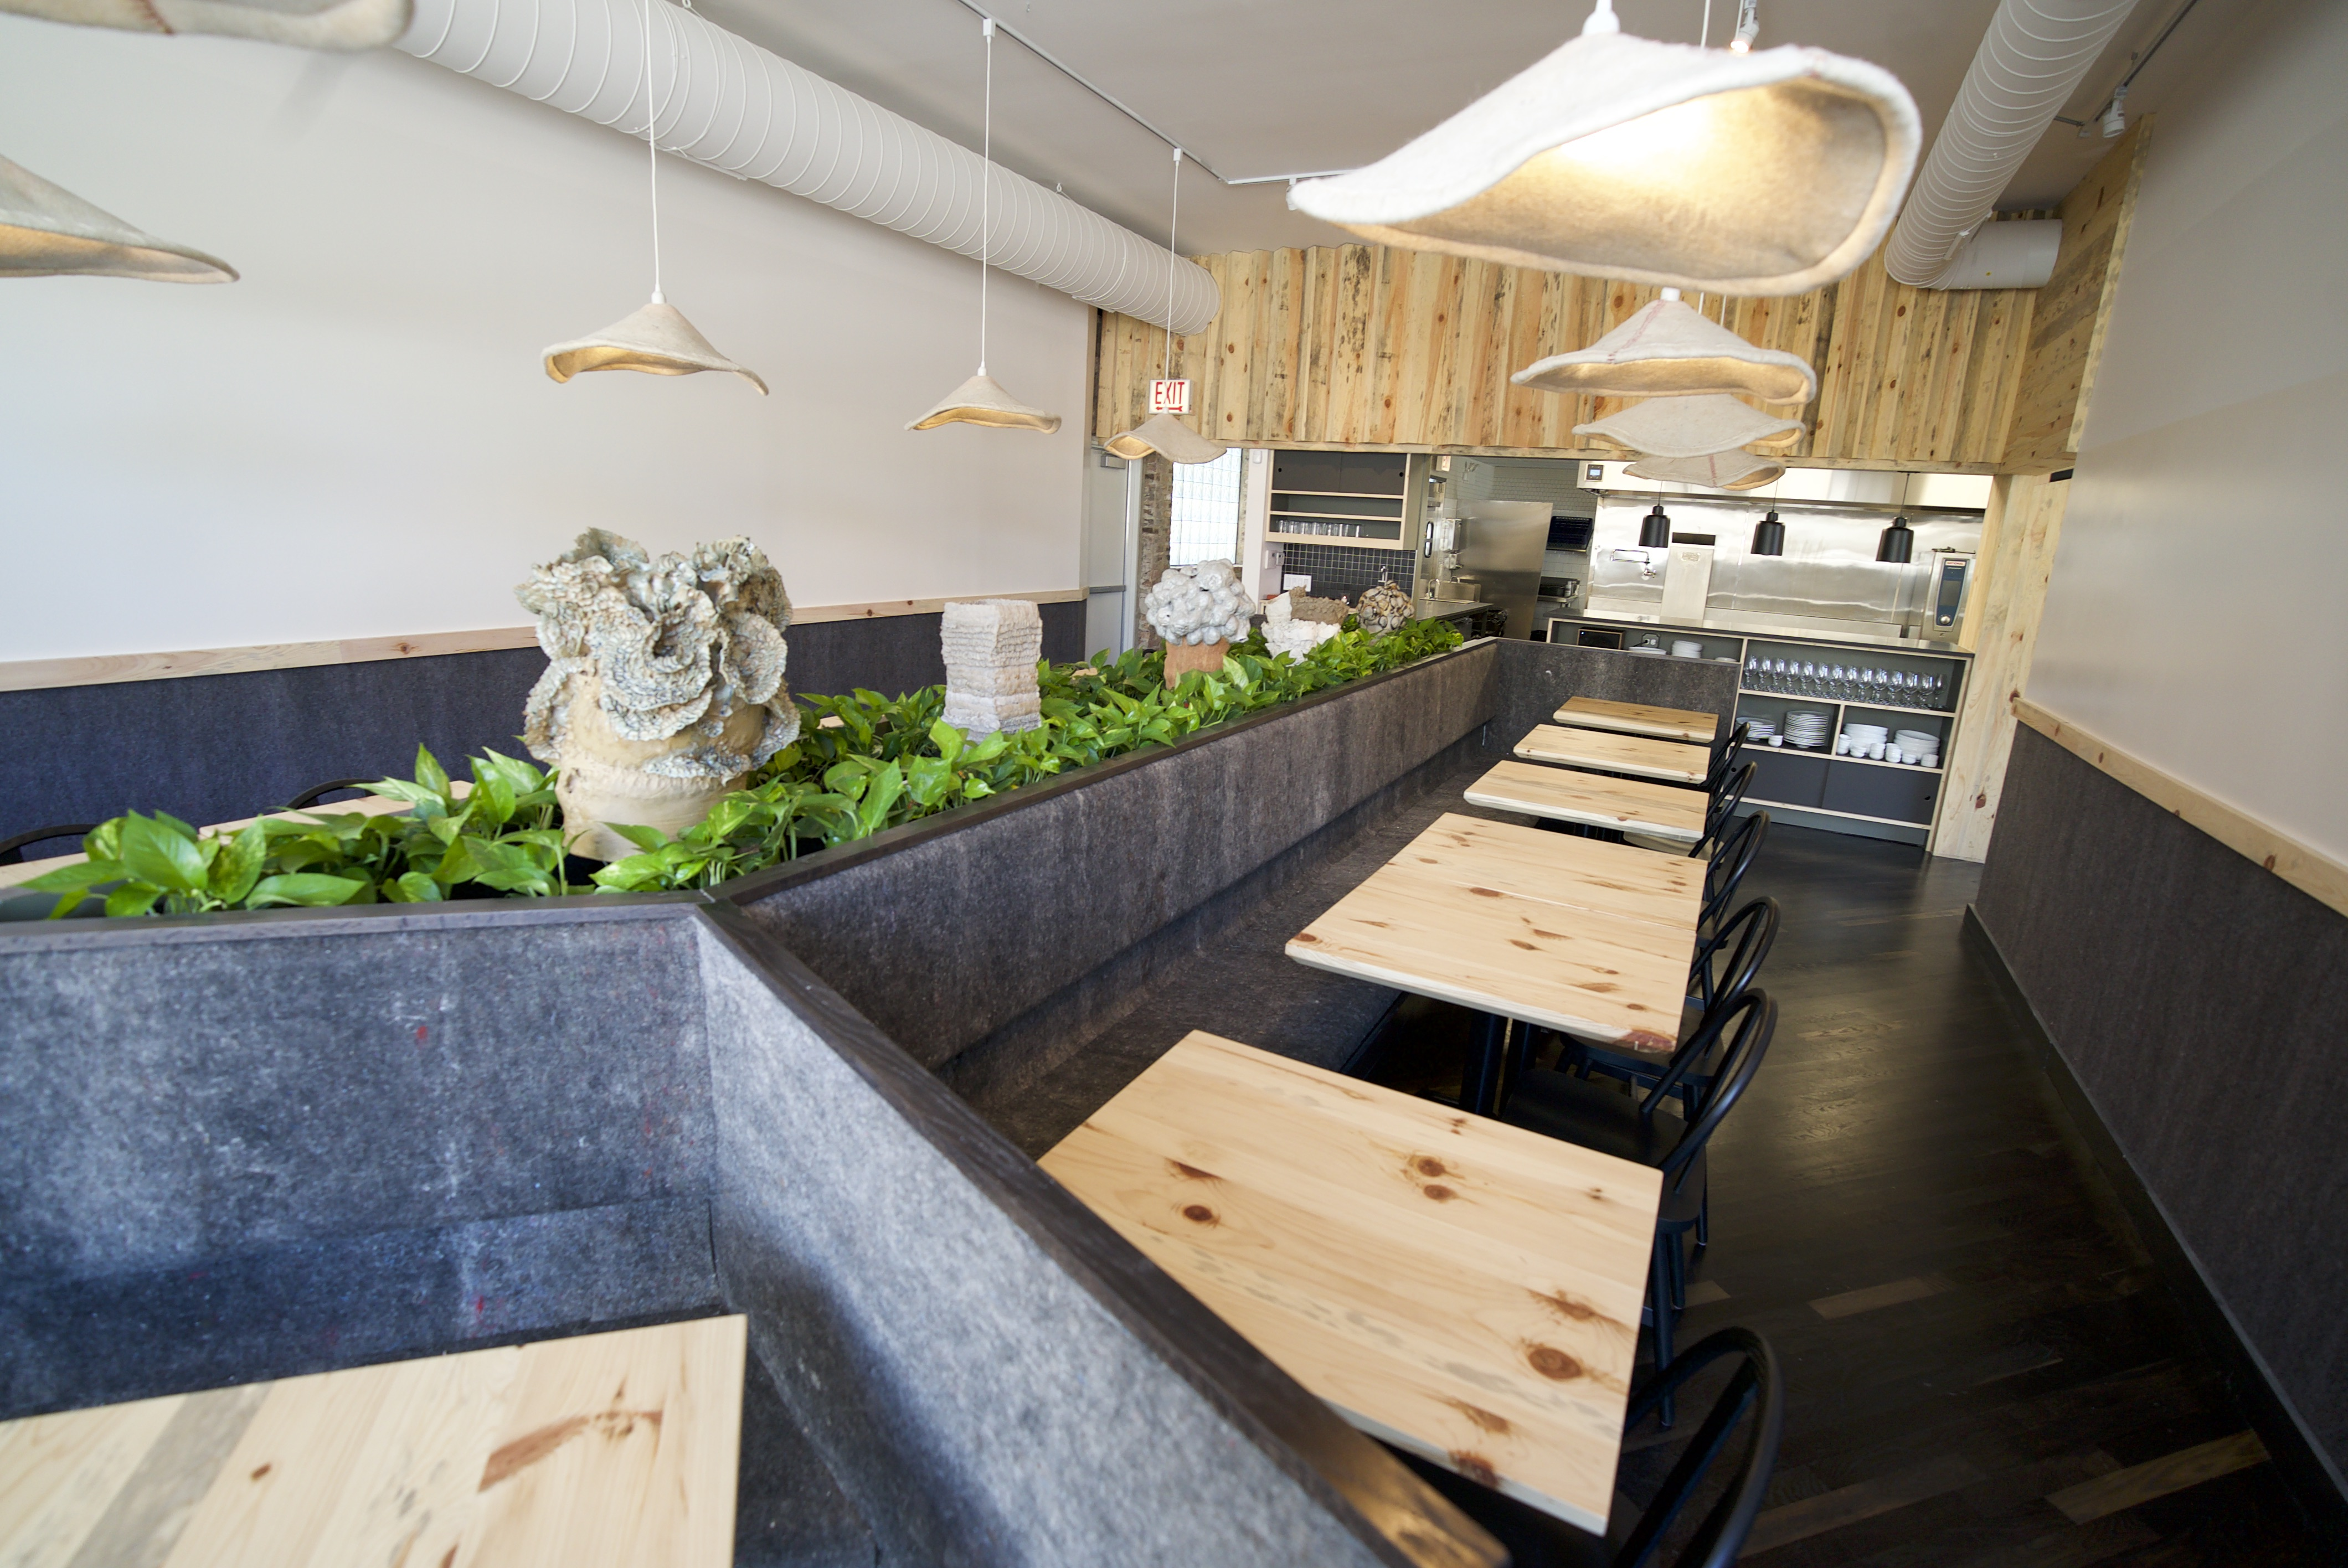 Beverly Kim said this restaurant is lighter in contrast to Parachute's darker space.